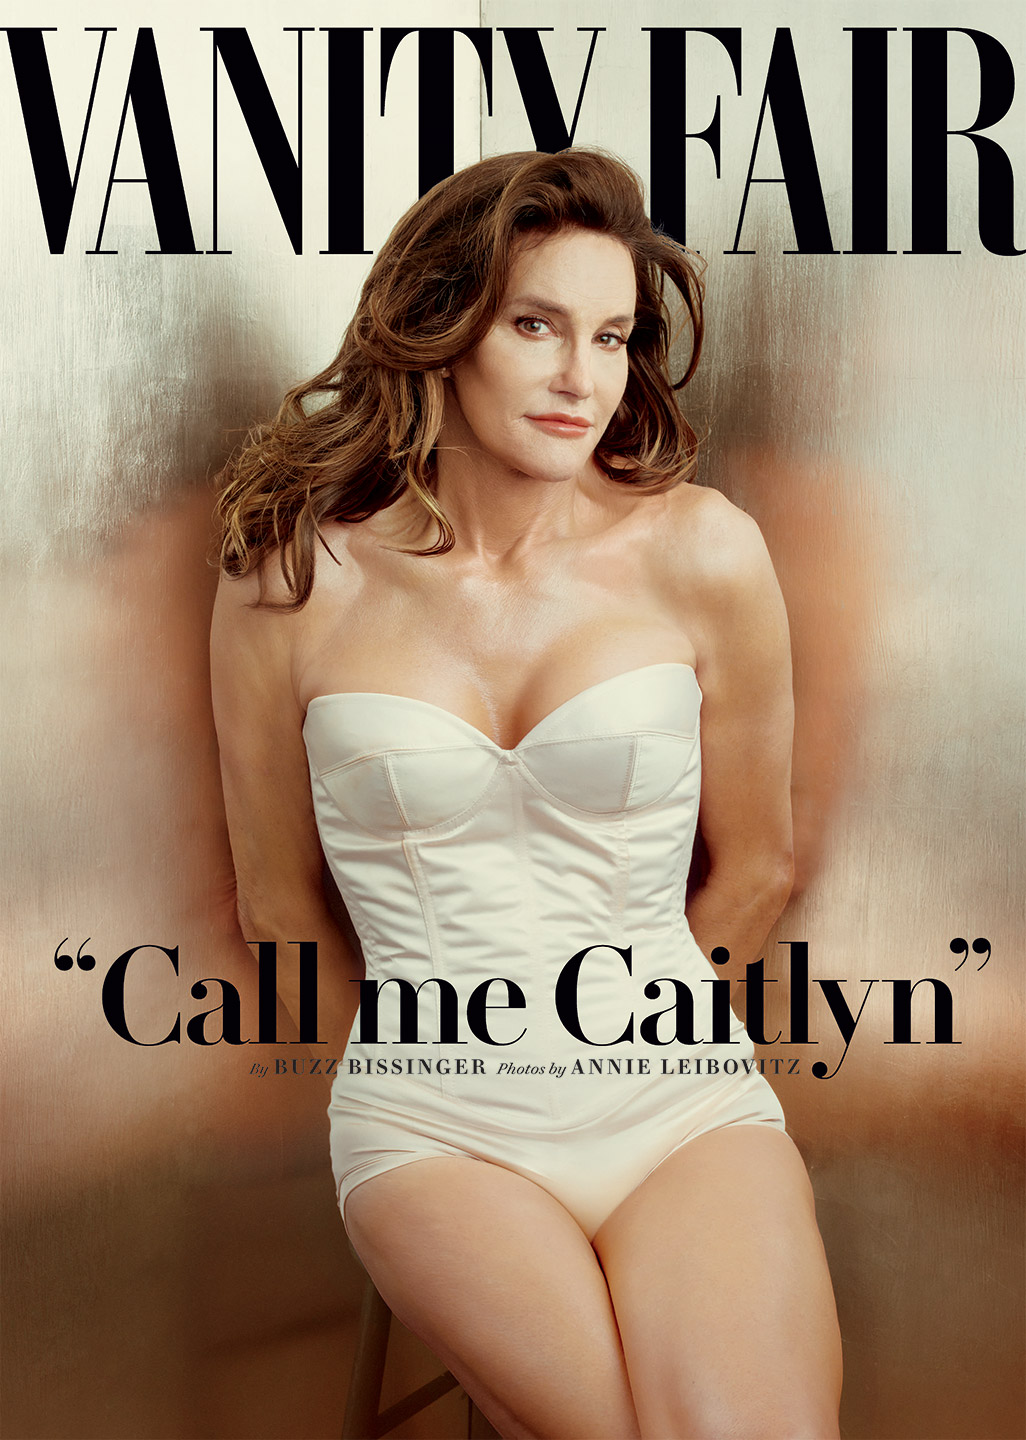 caitlyn jenner vanity fair cross-dressing